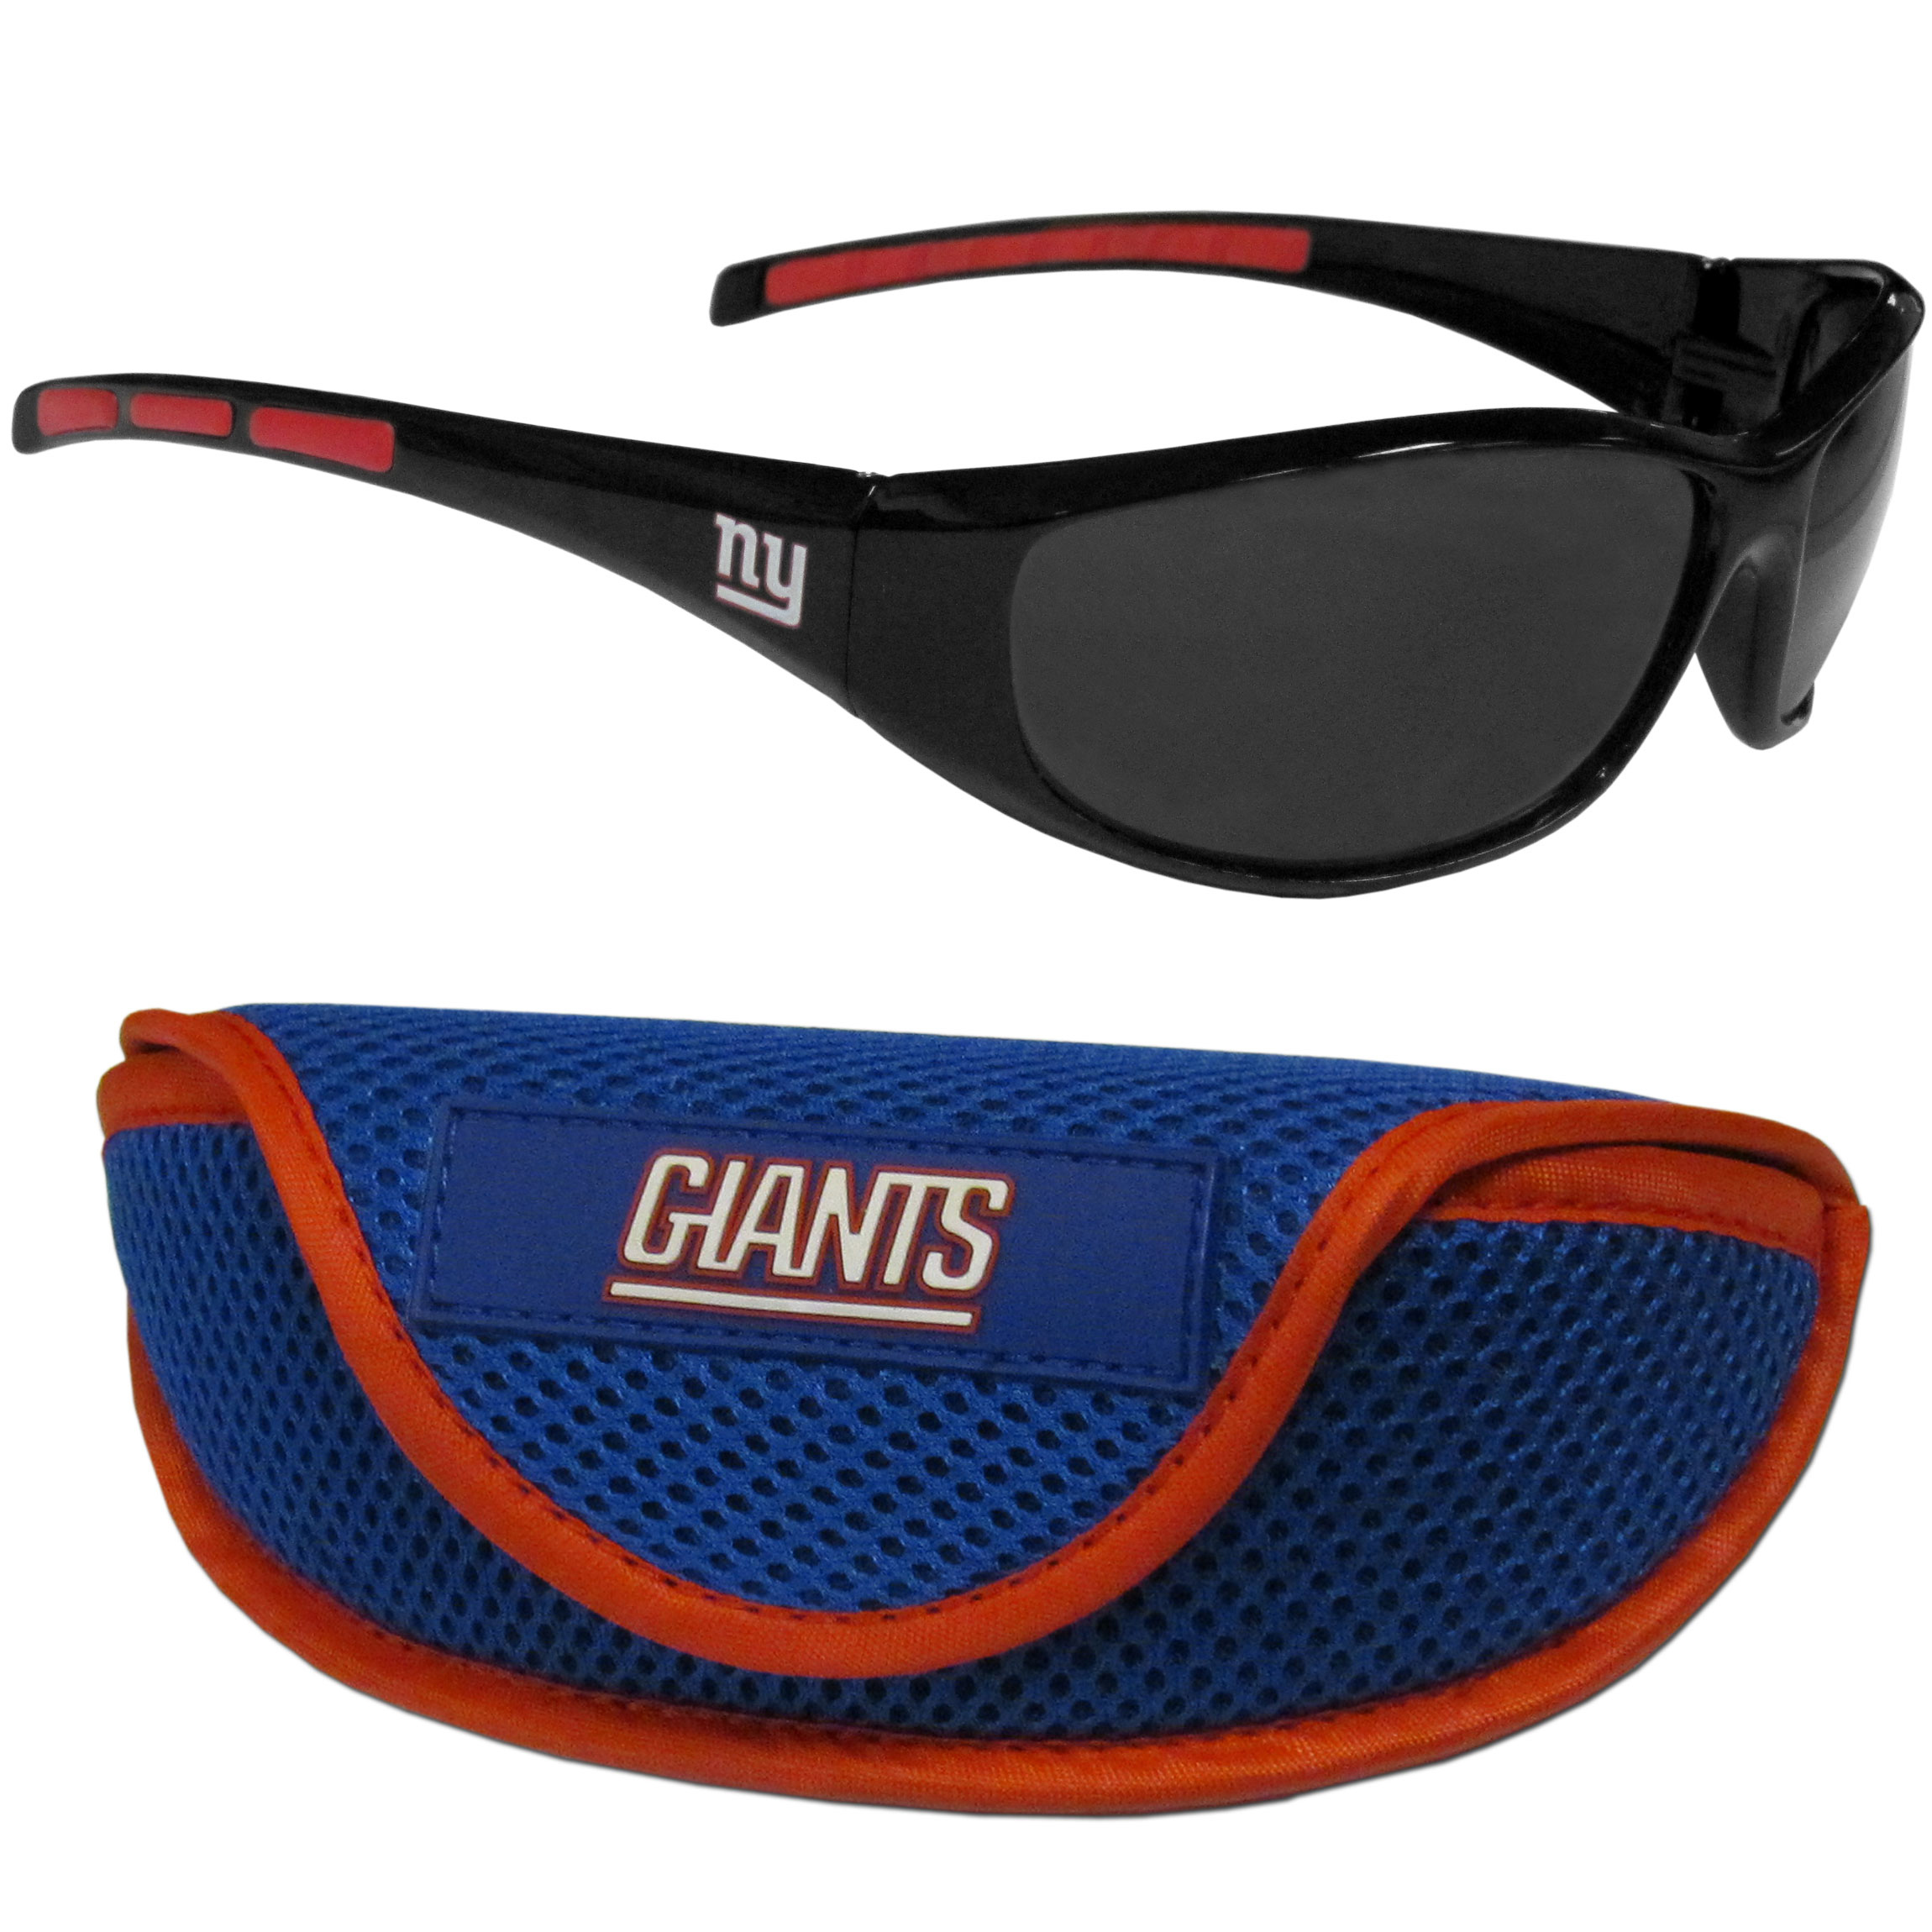 New York Giants Wrap Sunglass and Case Set - This great set includes a high quality pair of New York Giants wrap sunglasses and sport carrying case.